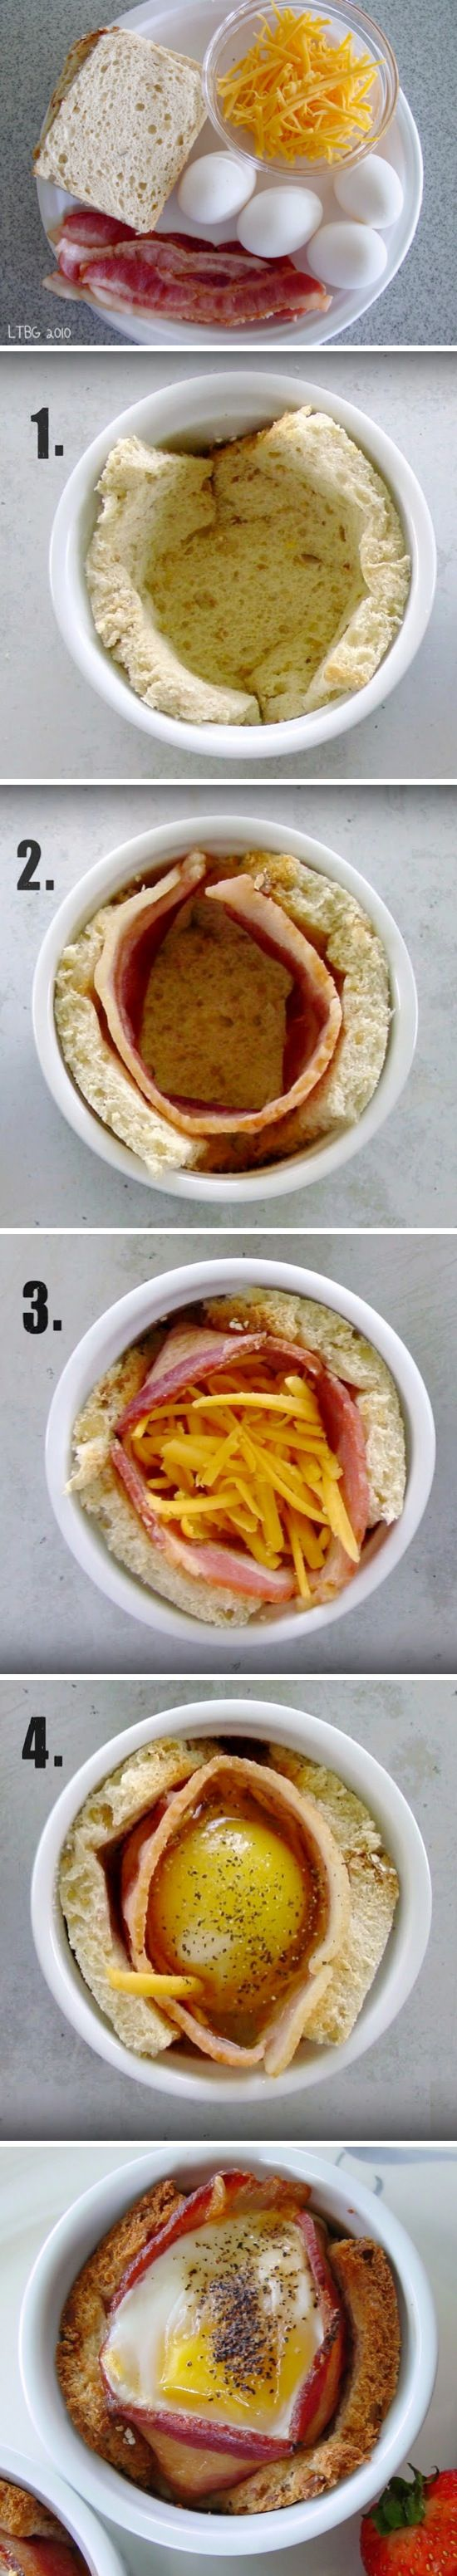 Breakfast Cups - I would butter the bread and place the buttered side against the muffin tin.